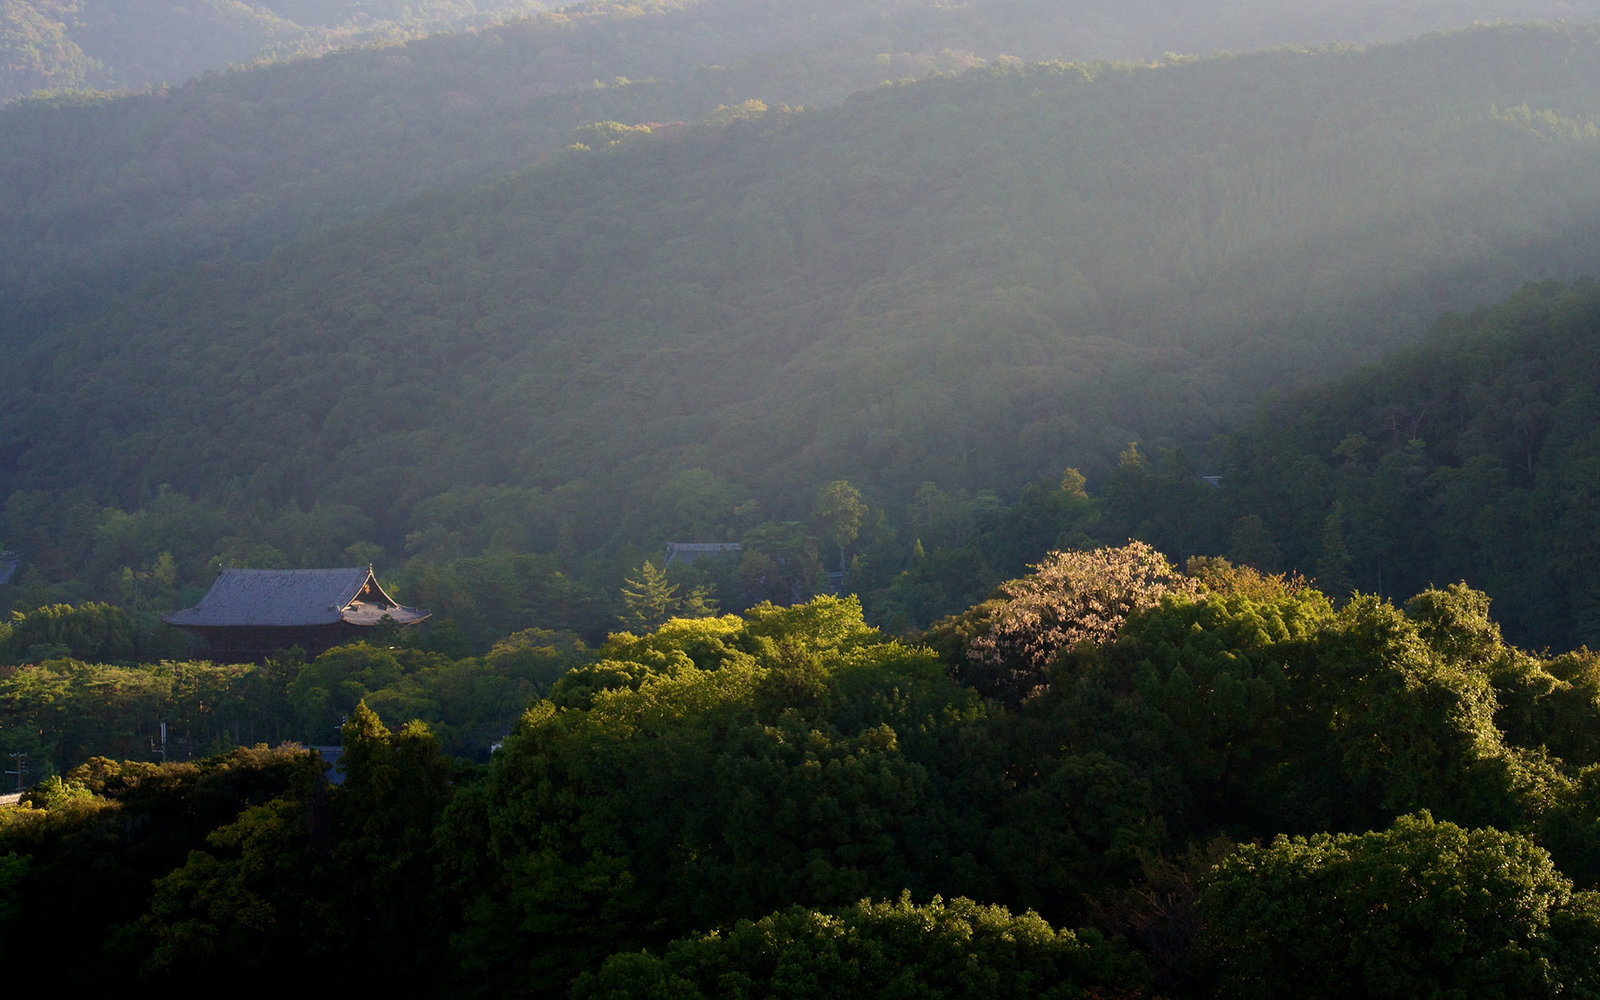 GettyImages-141766643-Japanese-Temples0116.jpg